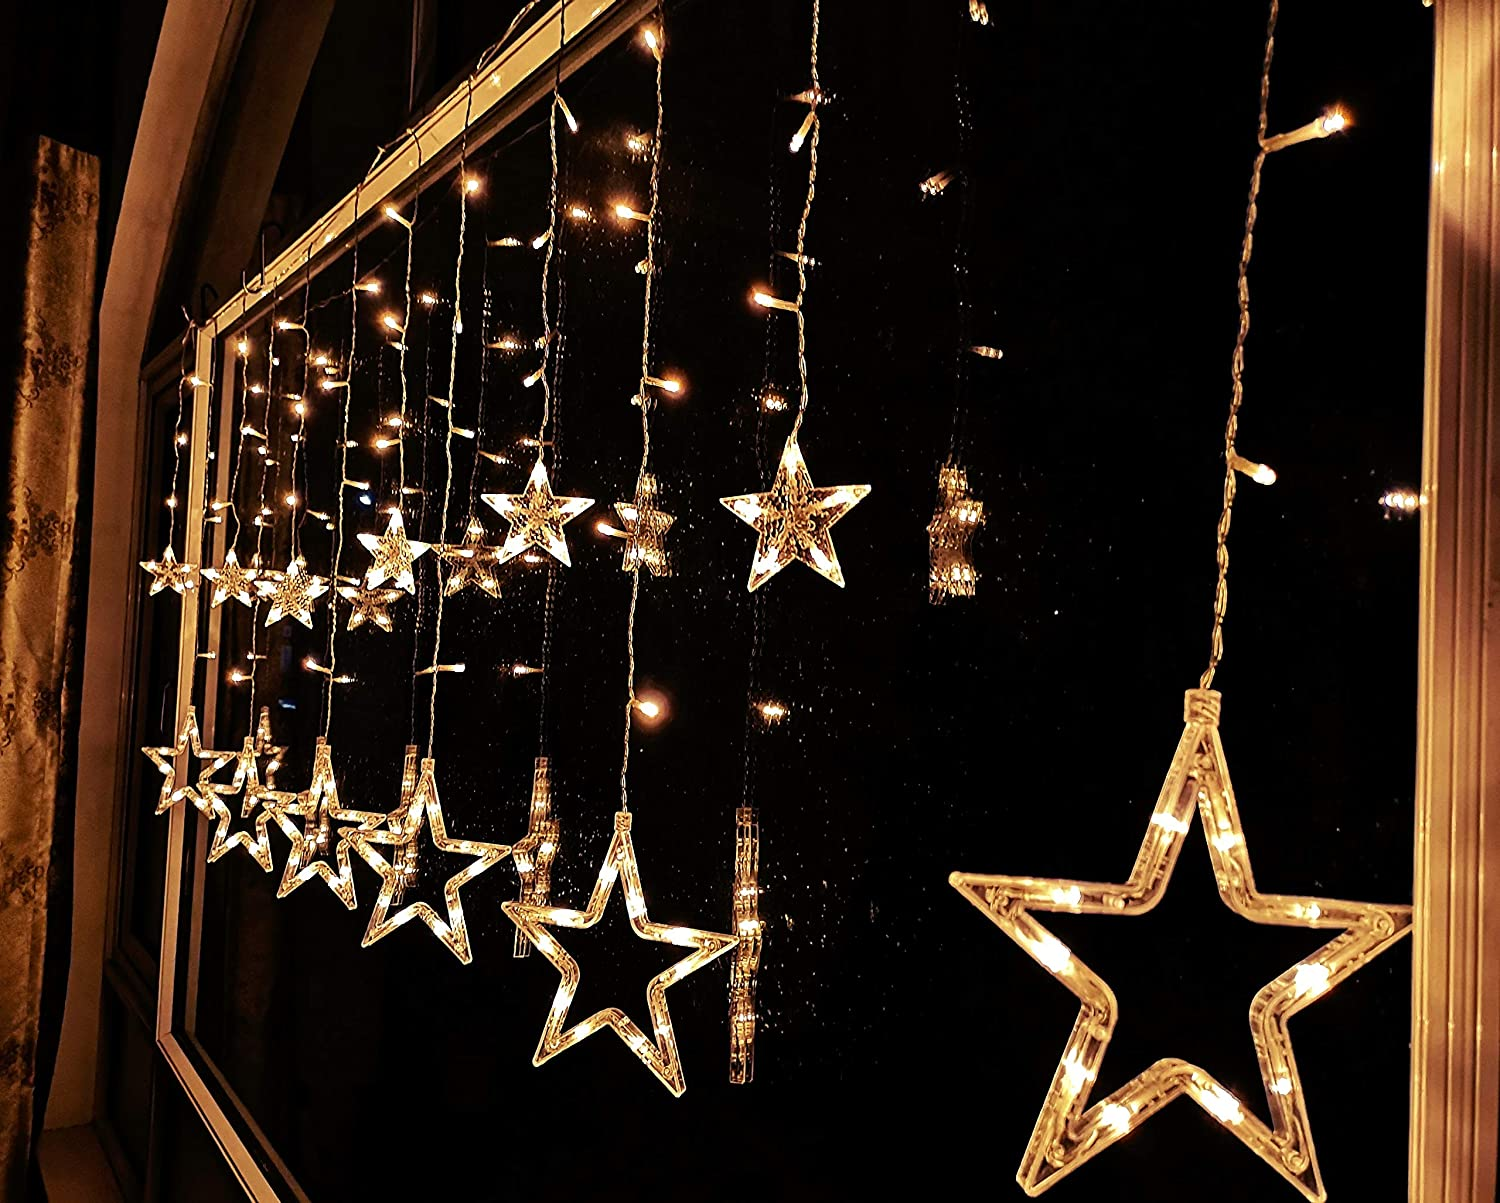 FuChsun Star Icicle String Christmas Lights 138 LED Starry Warm White 6.56 2.95ft Curtain 12 Twinkle Pentagon 7.9 and 3.74inch Waterproof 9.84 Leading for X'Mas Wedding Birthday Party Décor